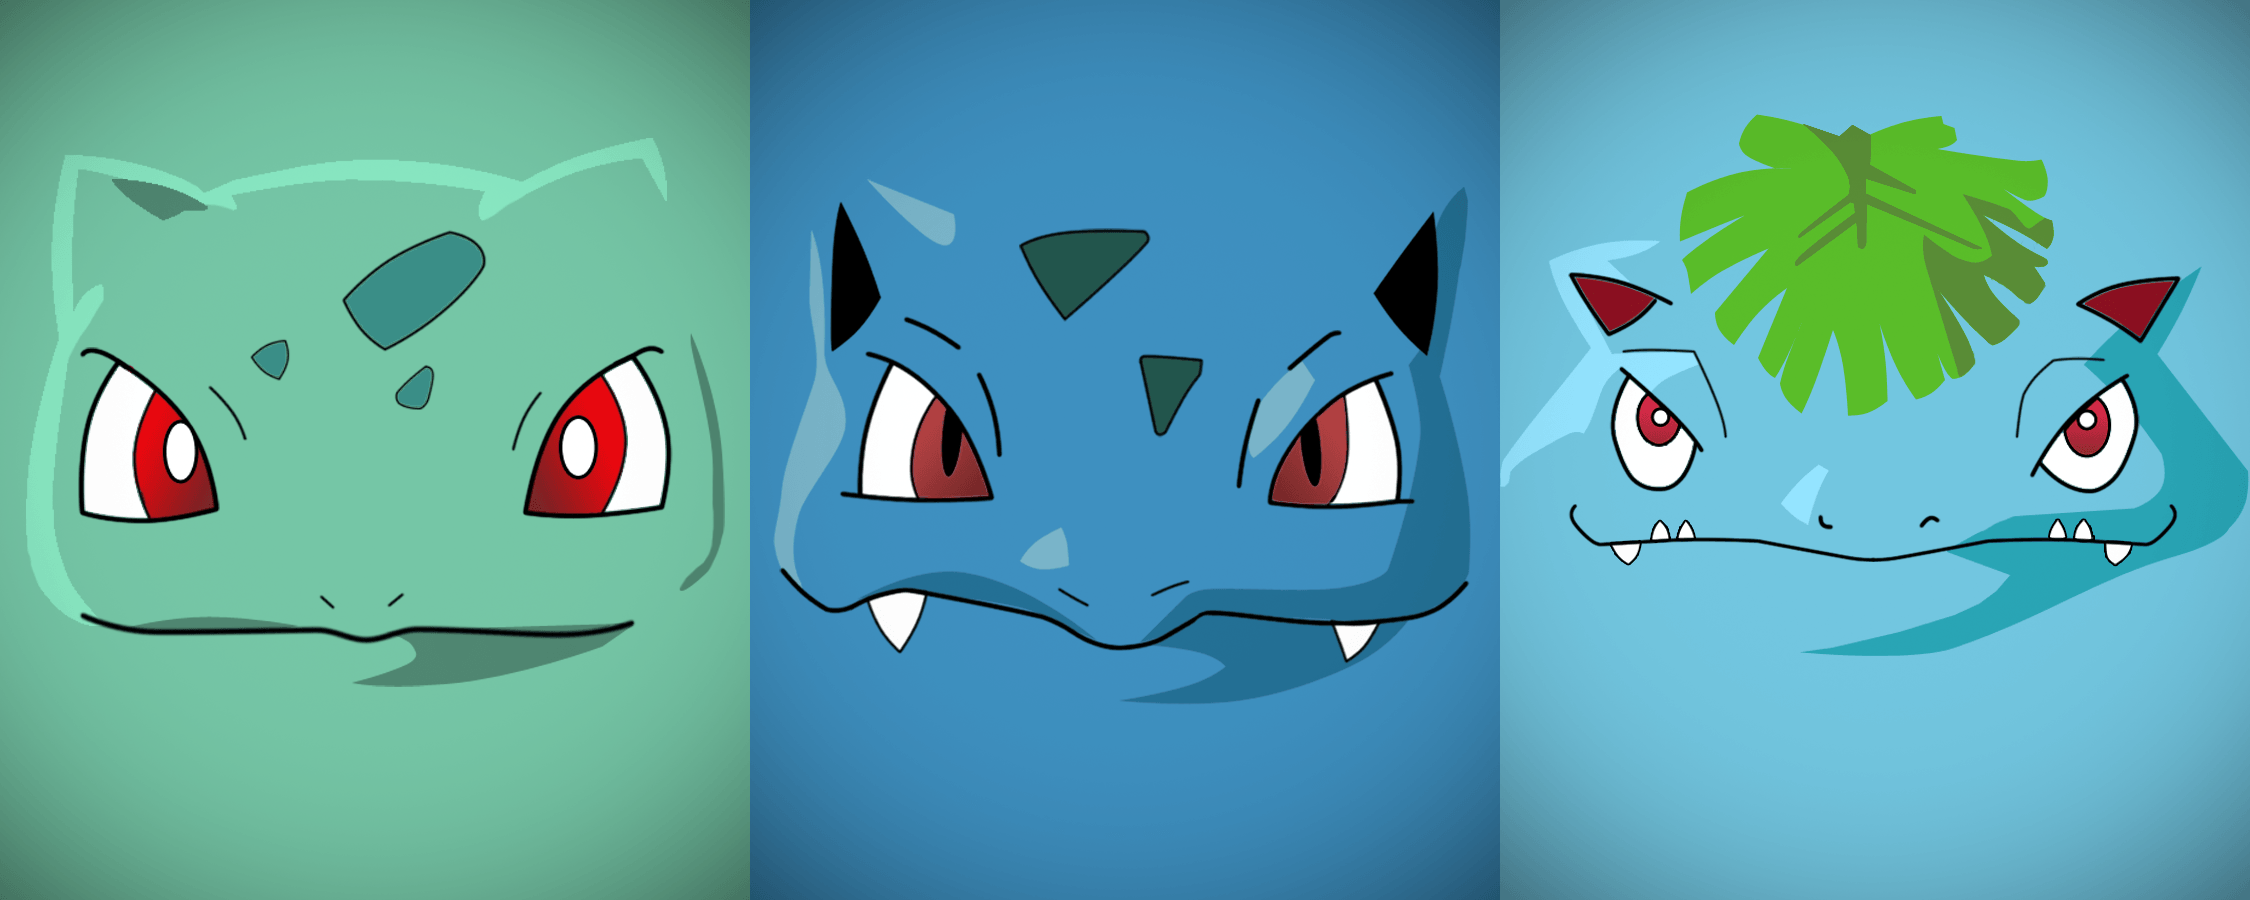 Minimalist Bulbasaur, Ivysaur and Venusaur by Vault